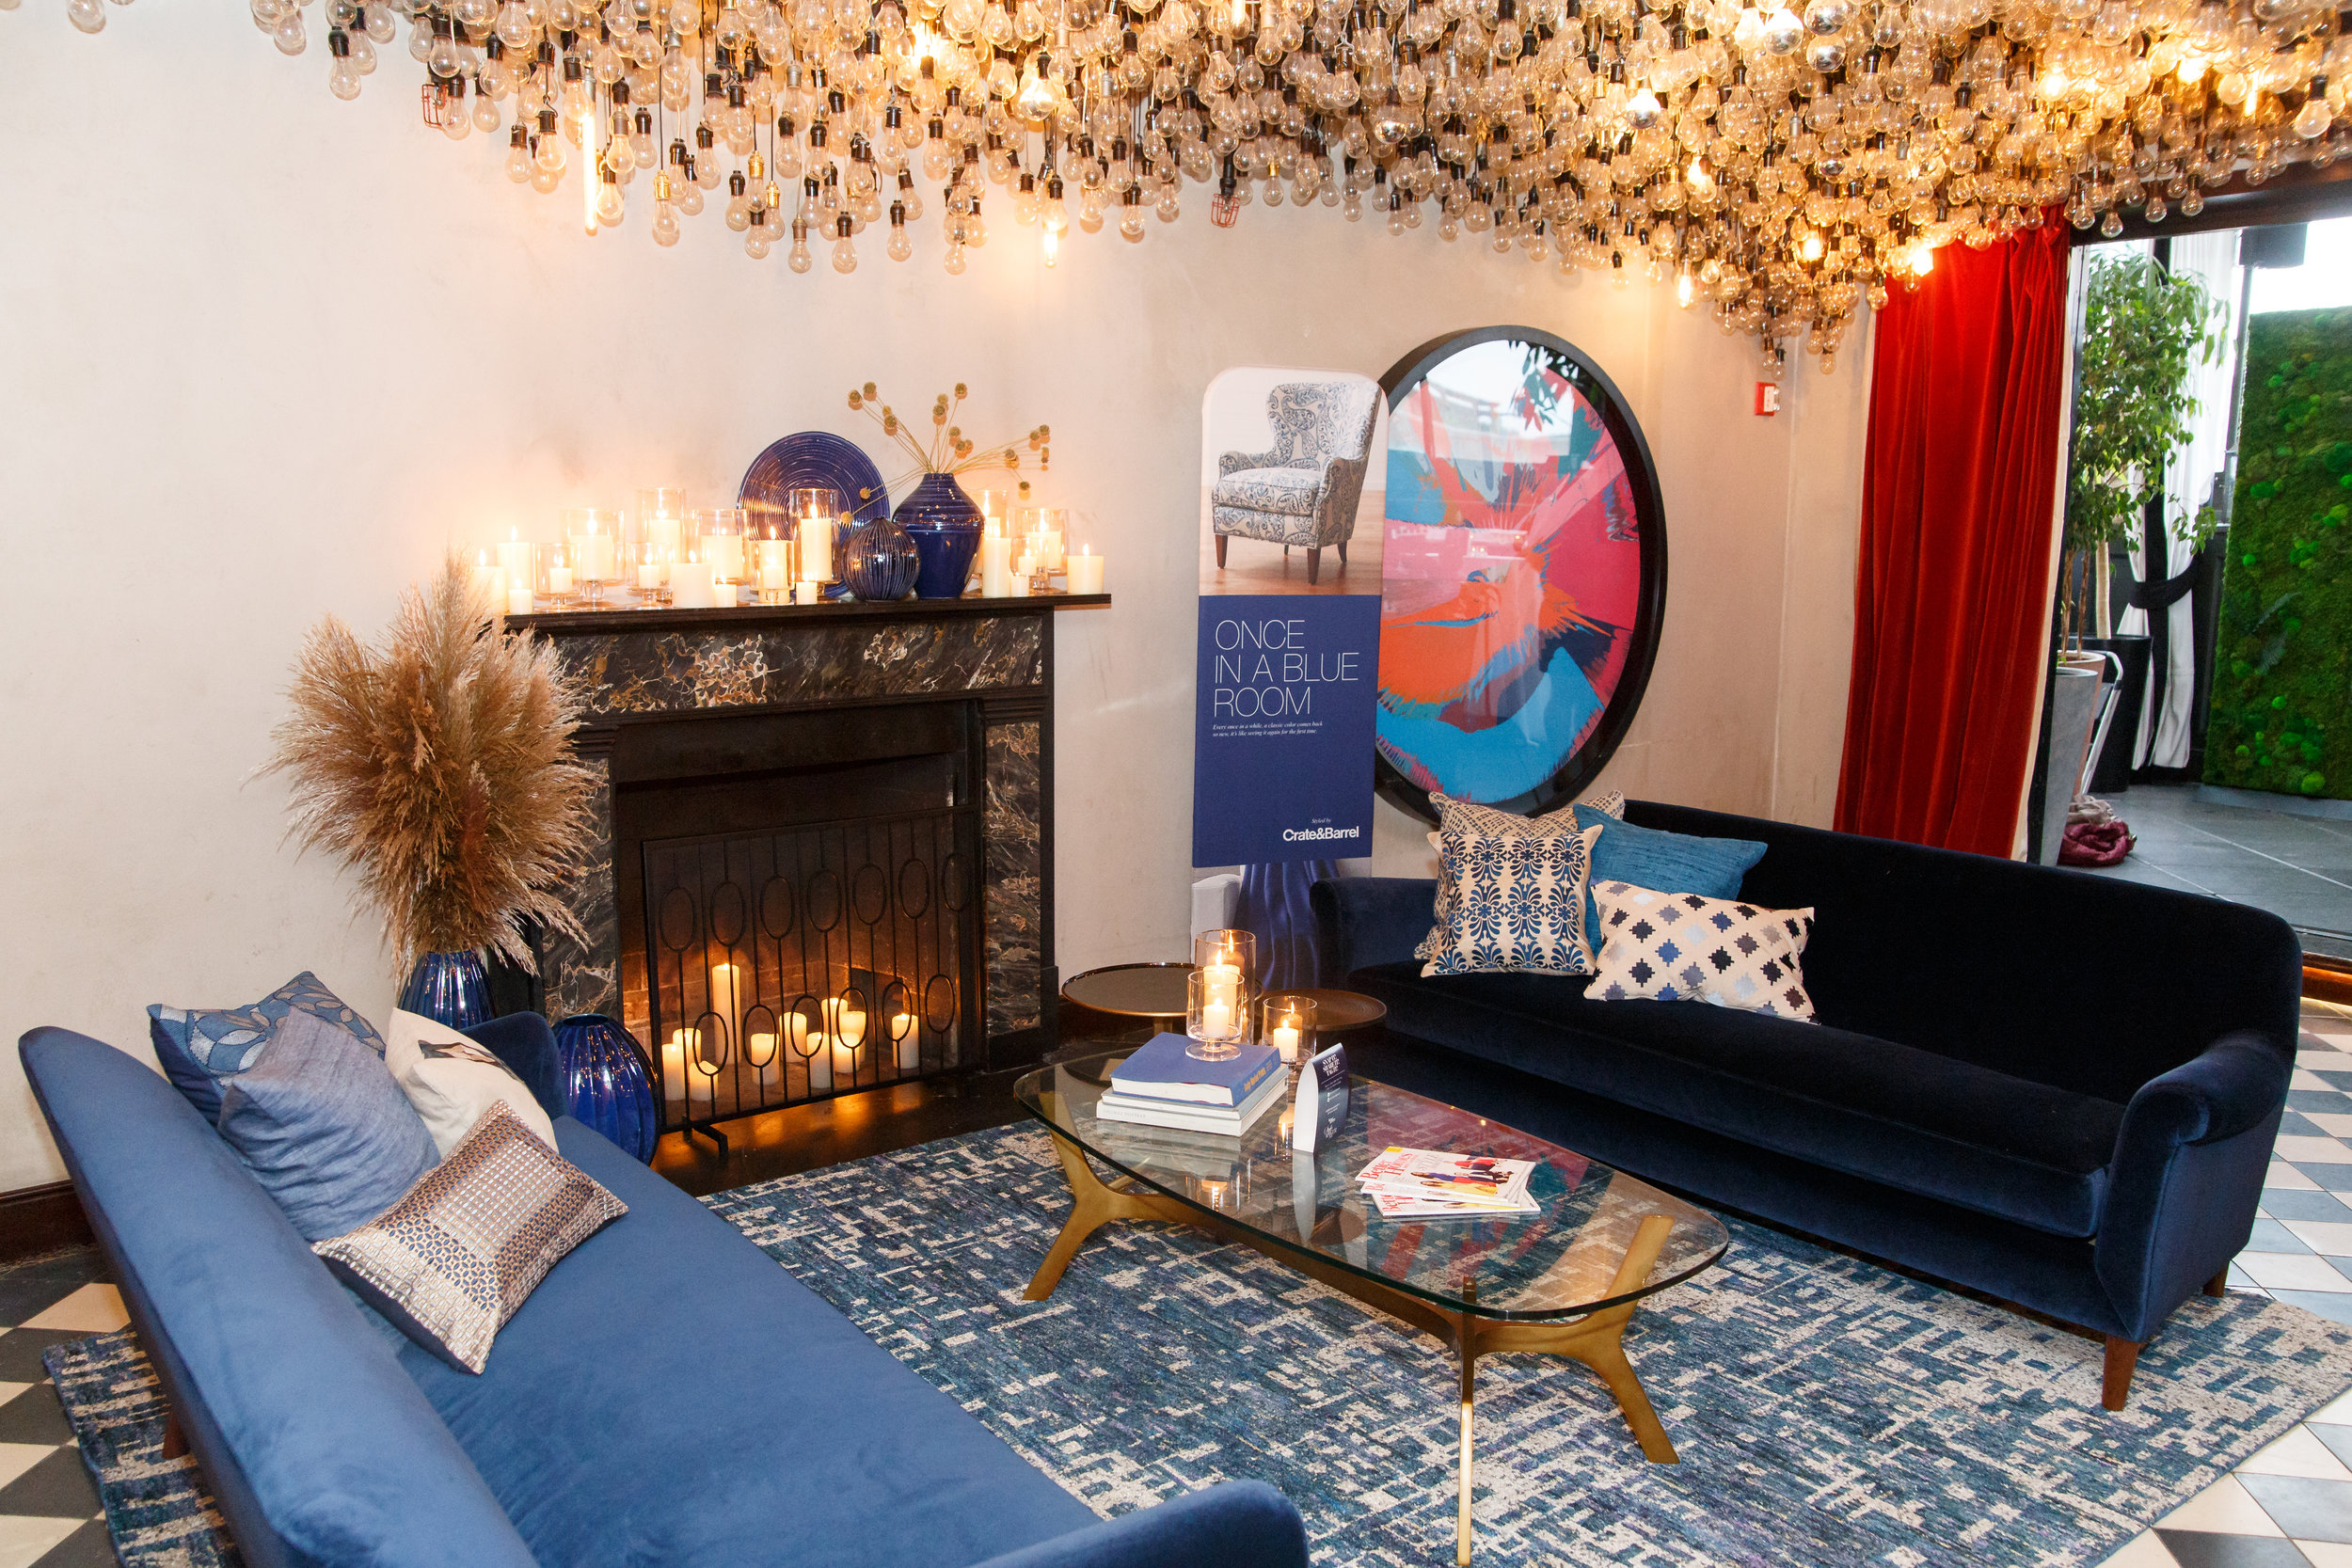 Awesome decor in blues by @crate&barrel